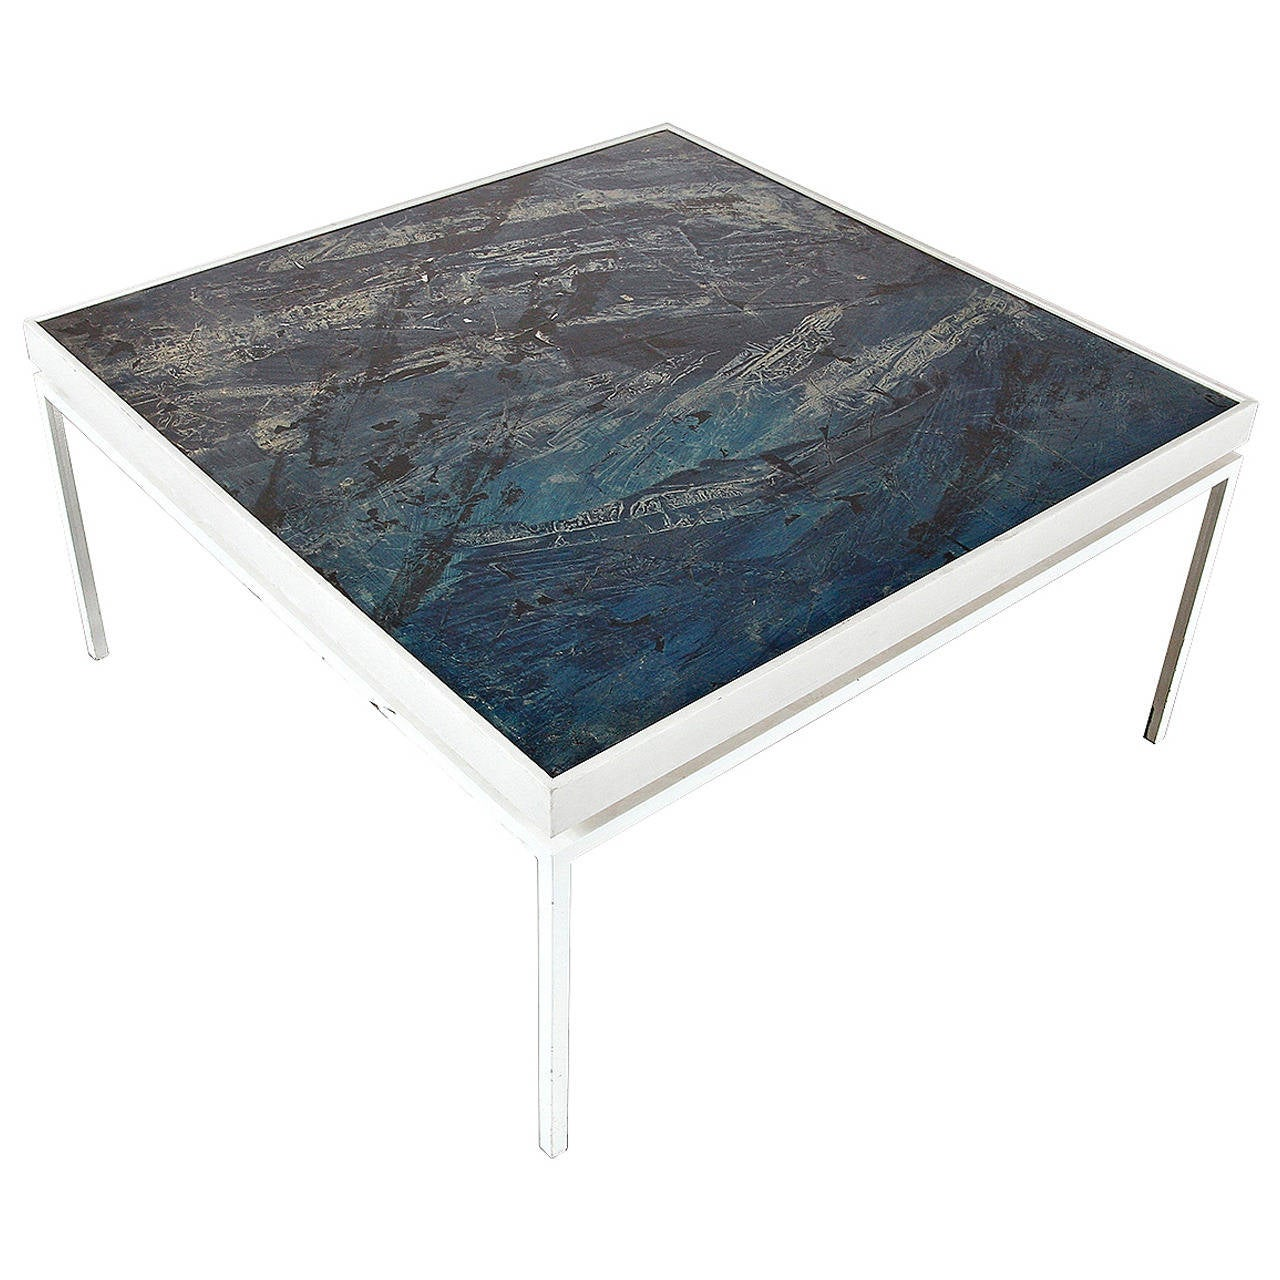 rare pierre paulin coffee table at 1stdibs. Black Bedroom Furniture Sets. Home Design Ideas